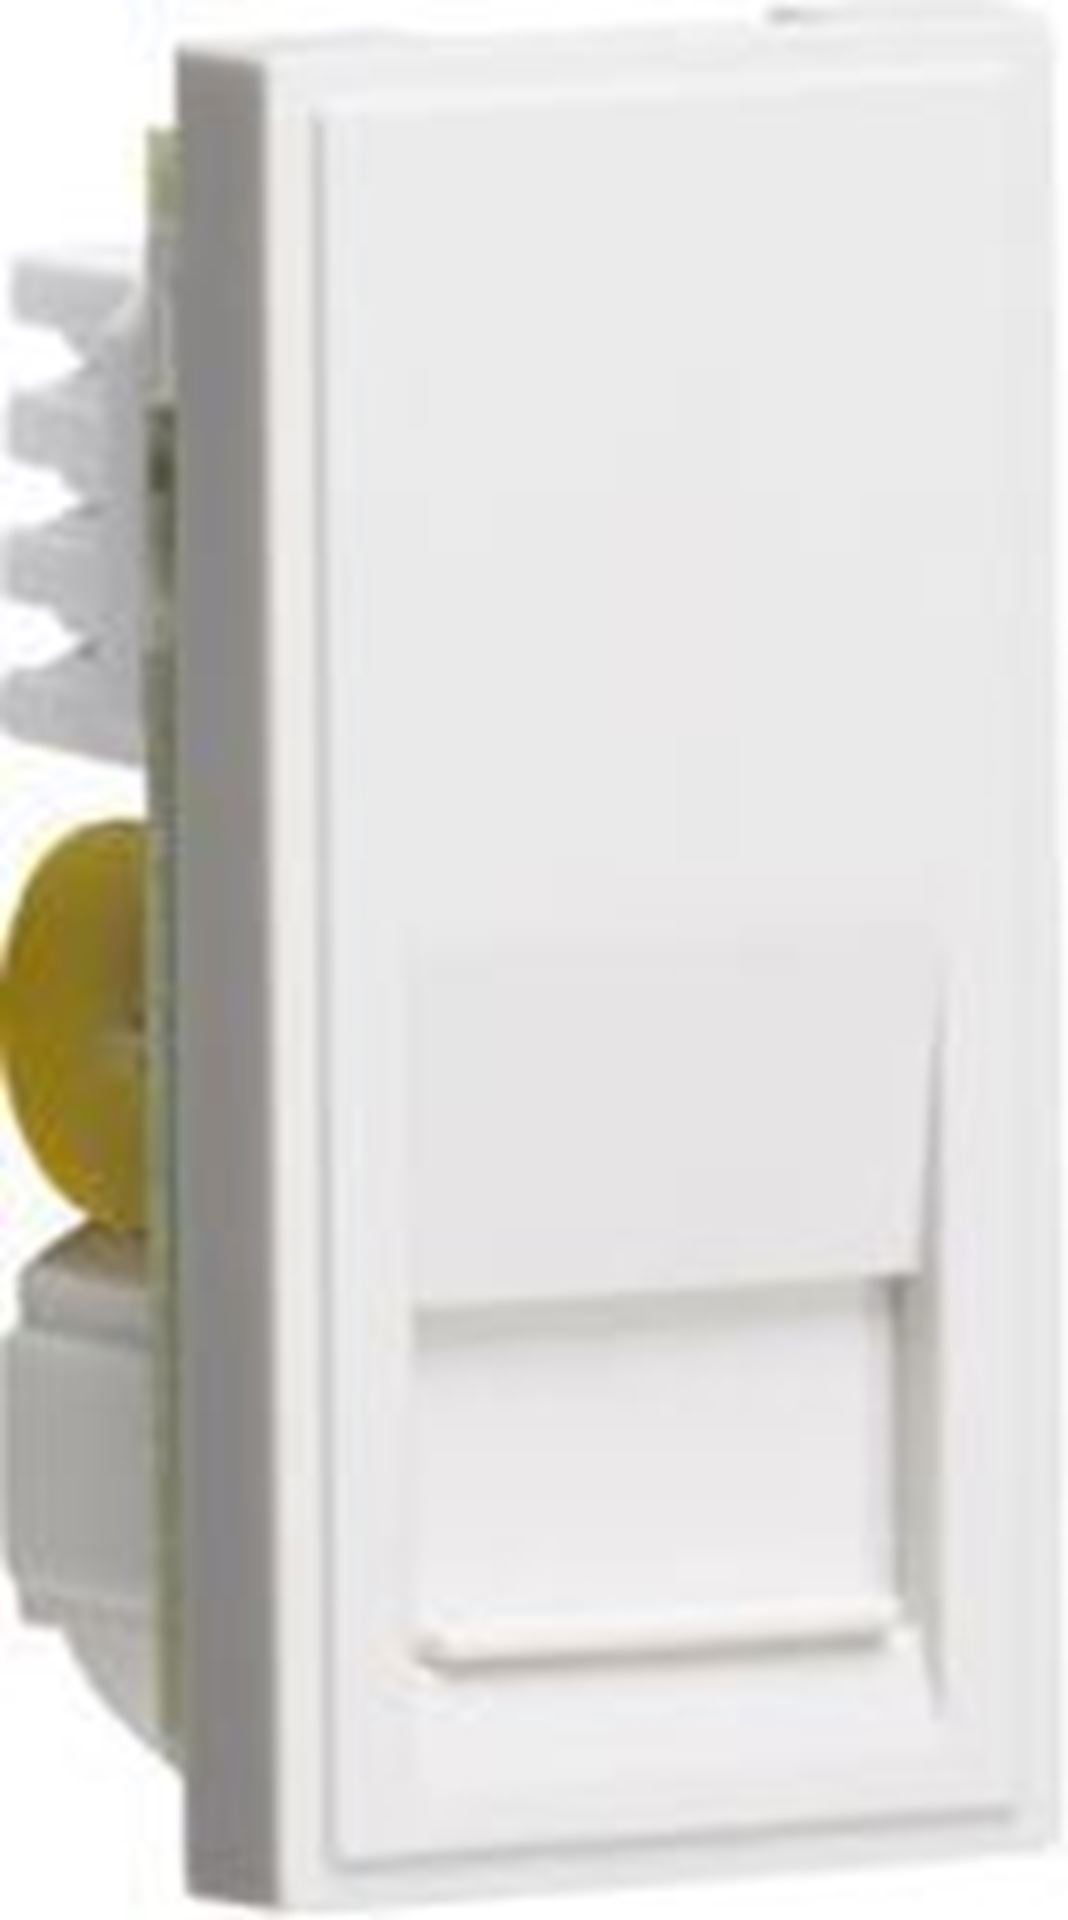 Telephone Master Outlet Module 25 x 50mm (IDC) - White NETBTMWH